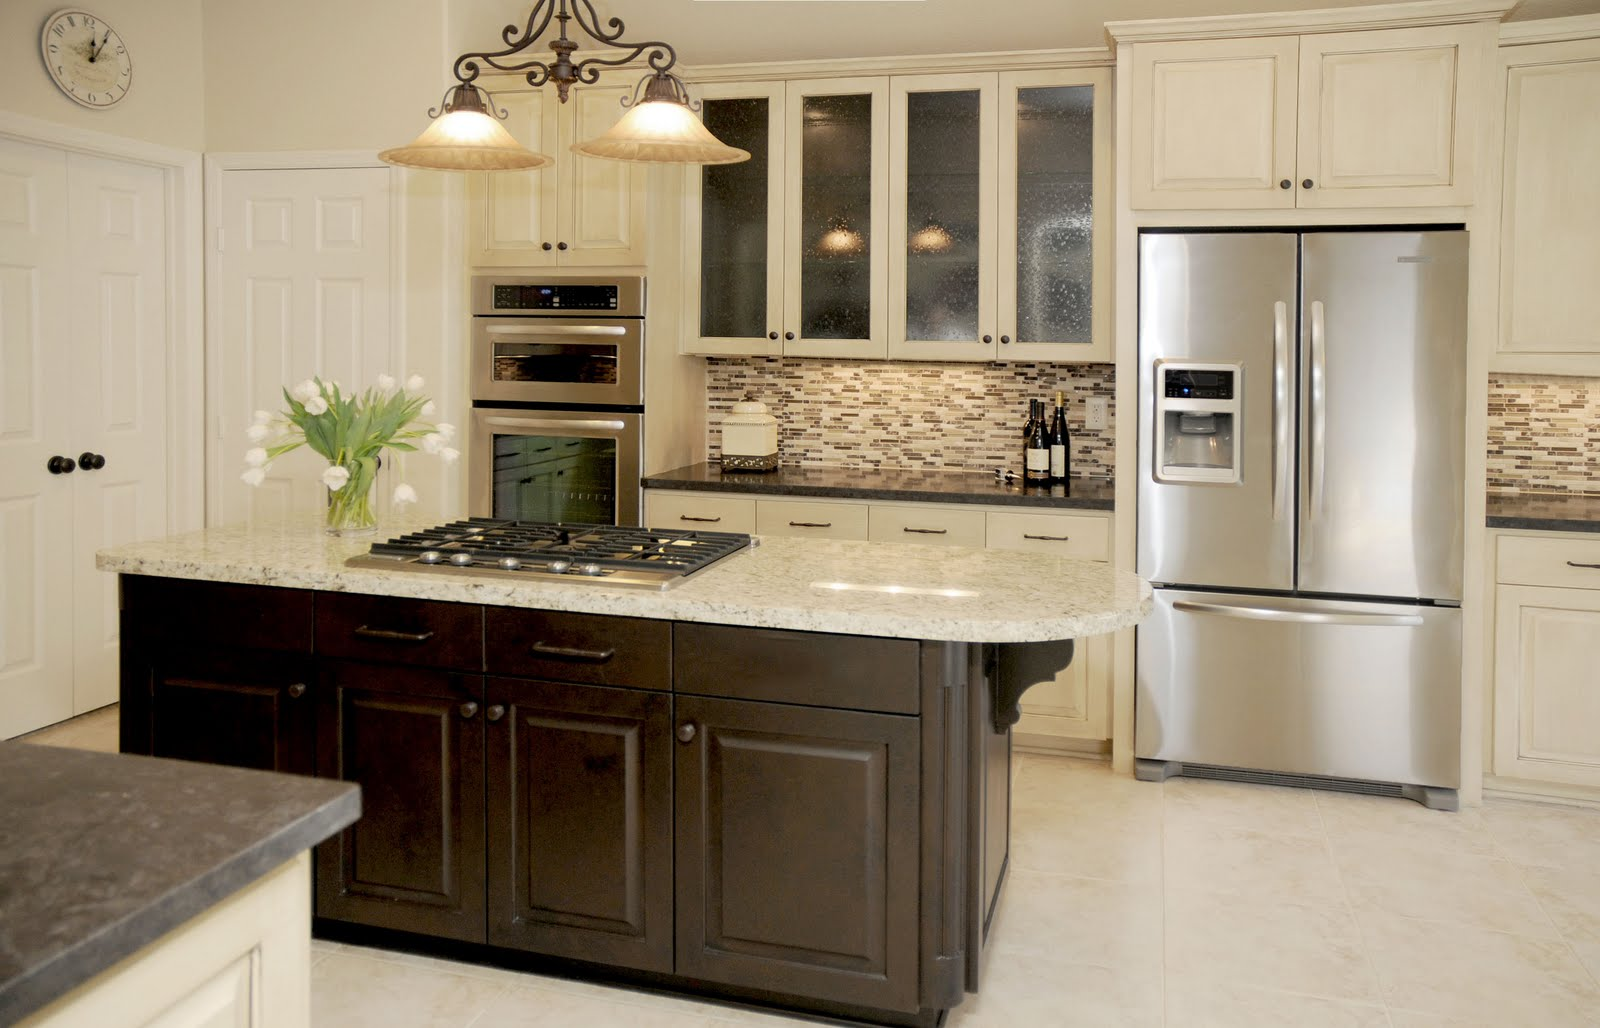 Galley kitchen remodels before and after kitchen design for Kitchen improvement ideas